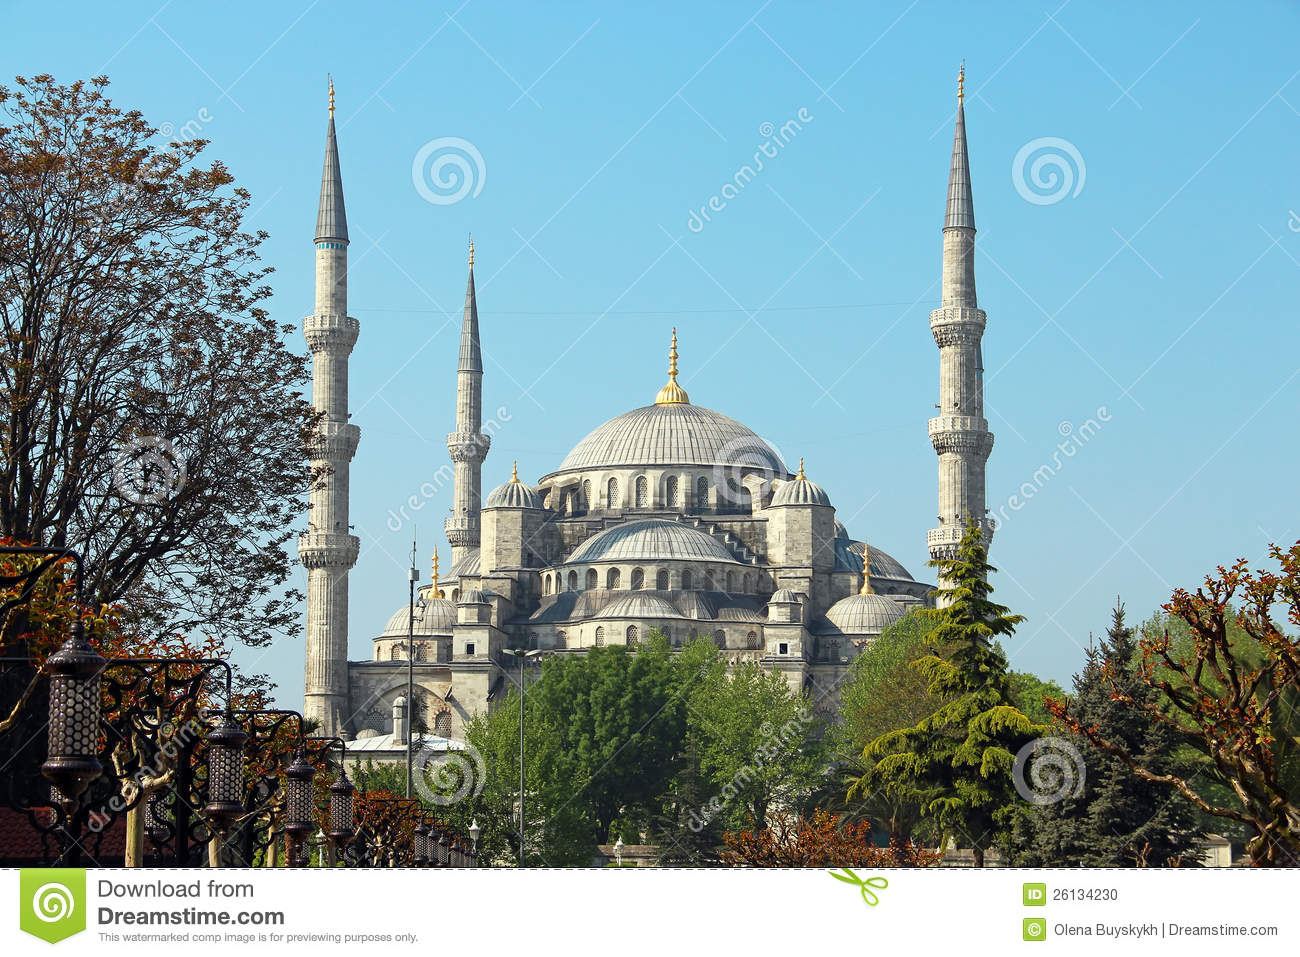 Download Sultan Ahmed Mosque (the Blue Mosque), Istanbul Stock Photo - Image of cityscape, destination: 26134230